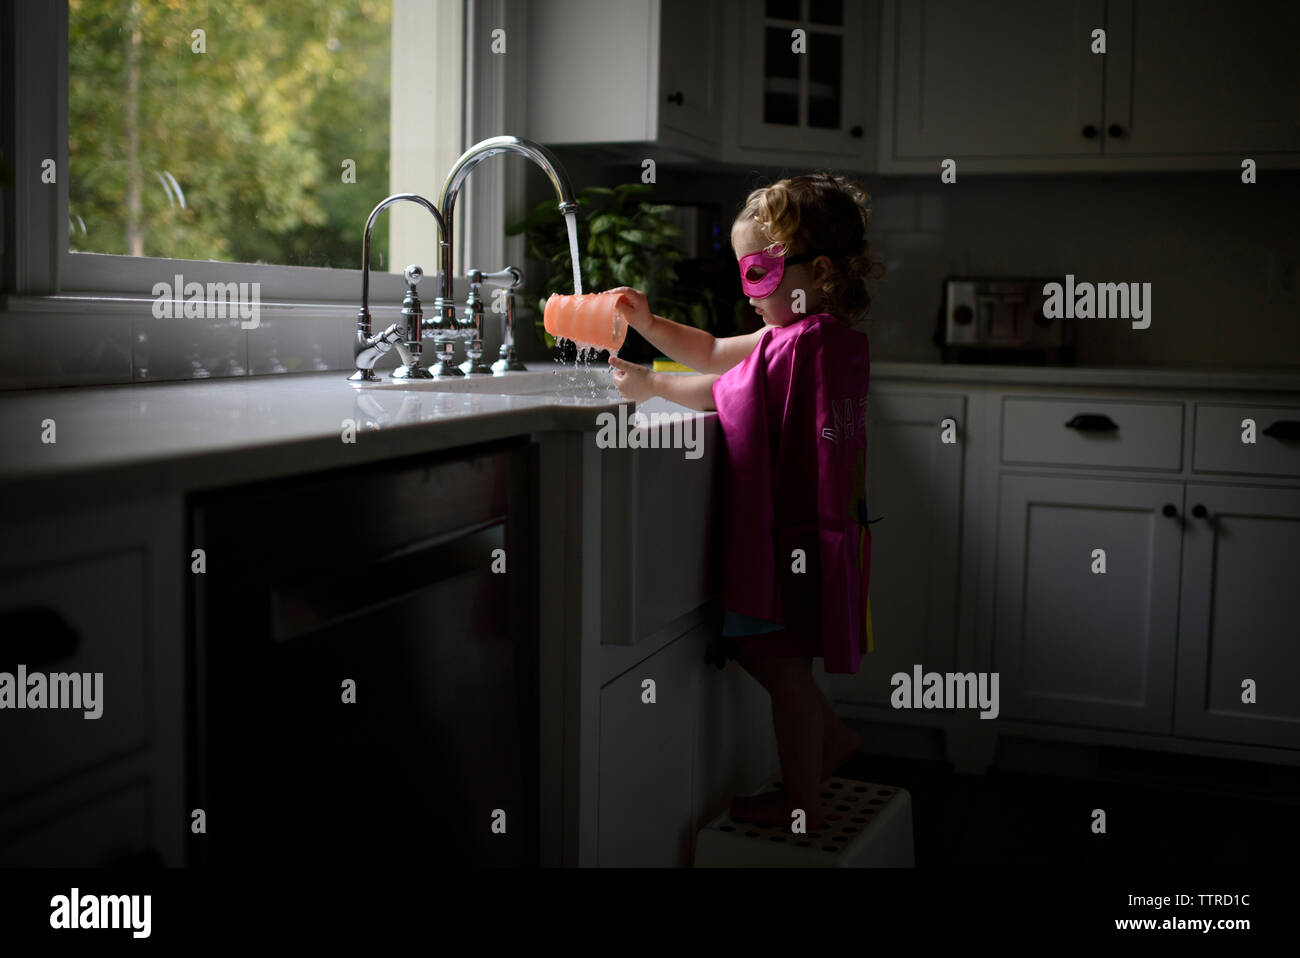 Side view of girl wearing superhero costume washing hands in kitchen sink while standing at home Stock Photo